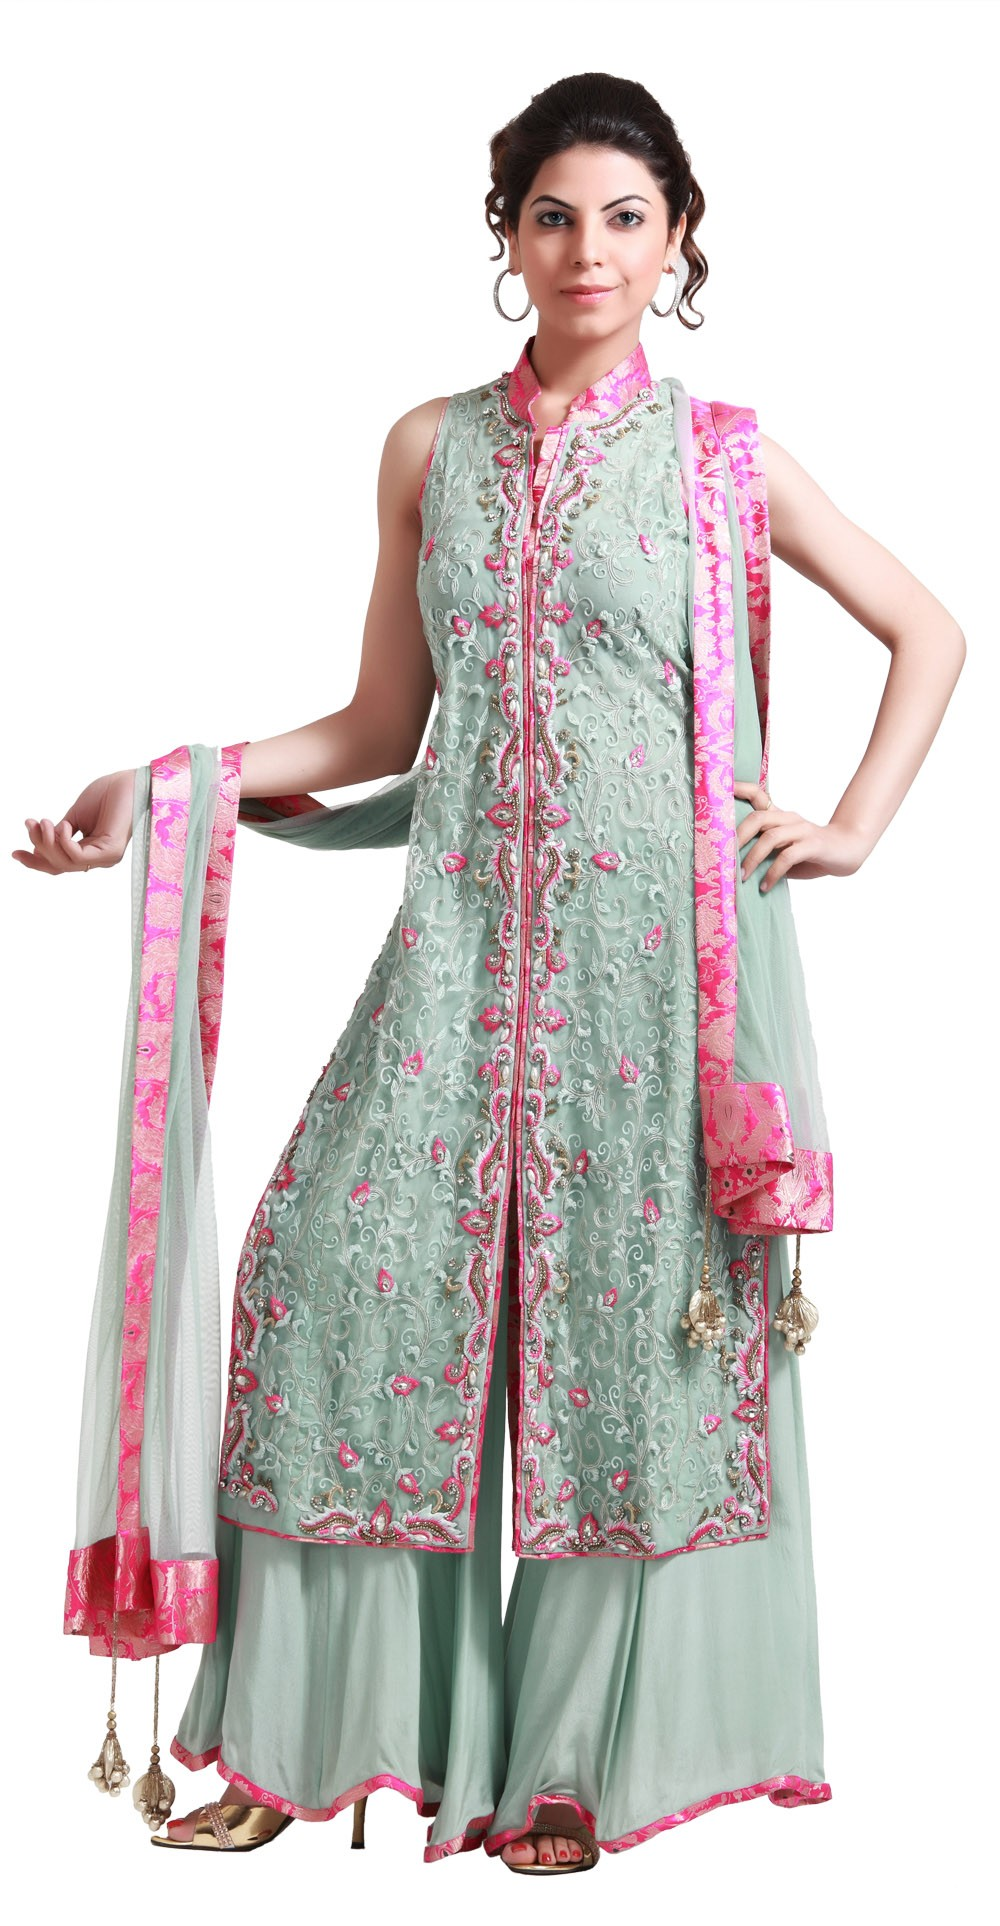 women's wear | Angarkh Essentially Indian | Page 2